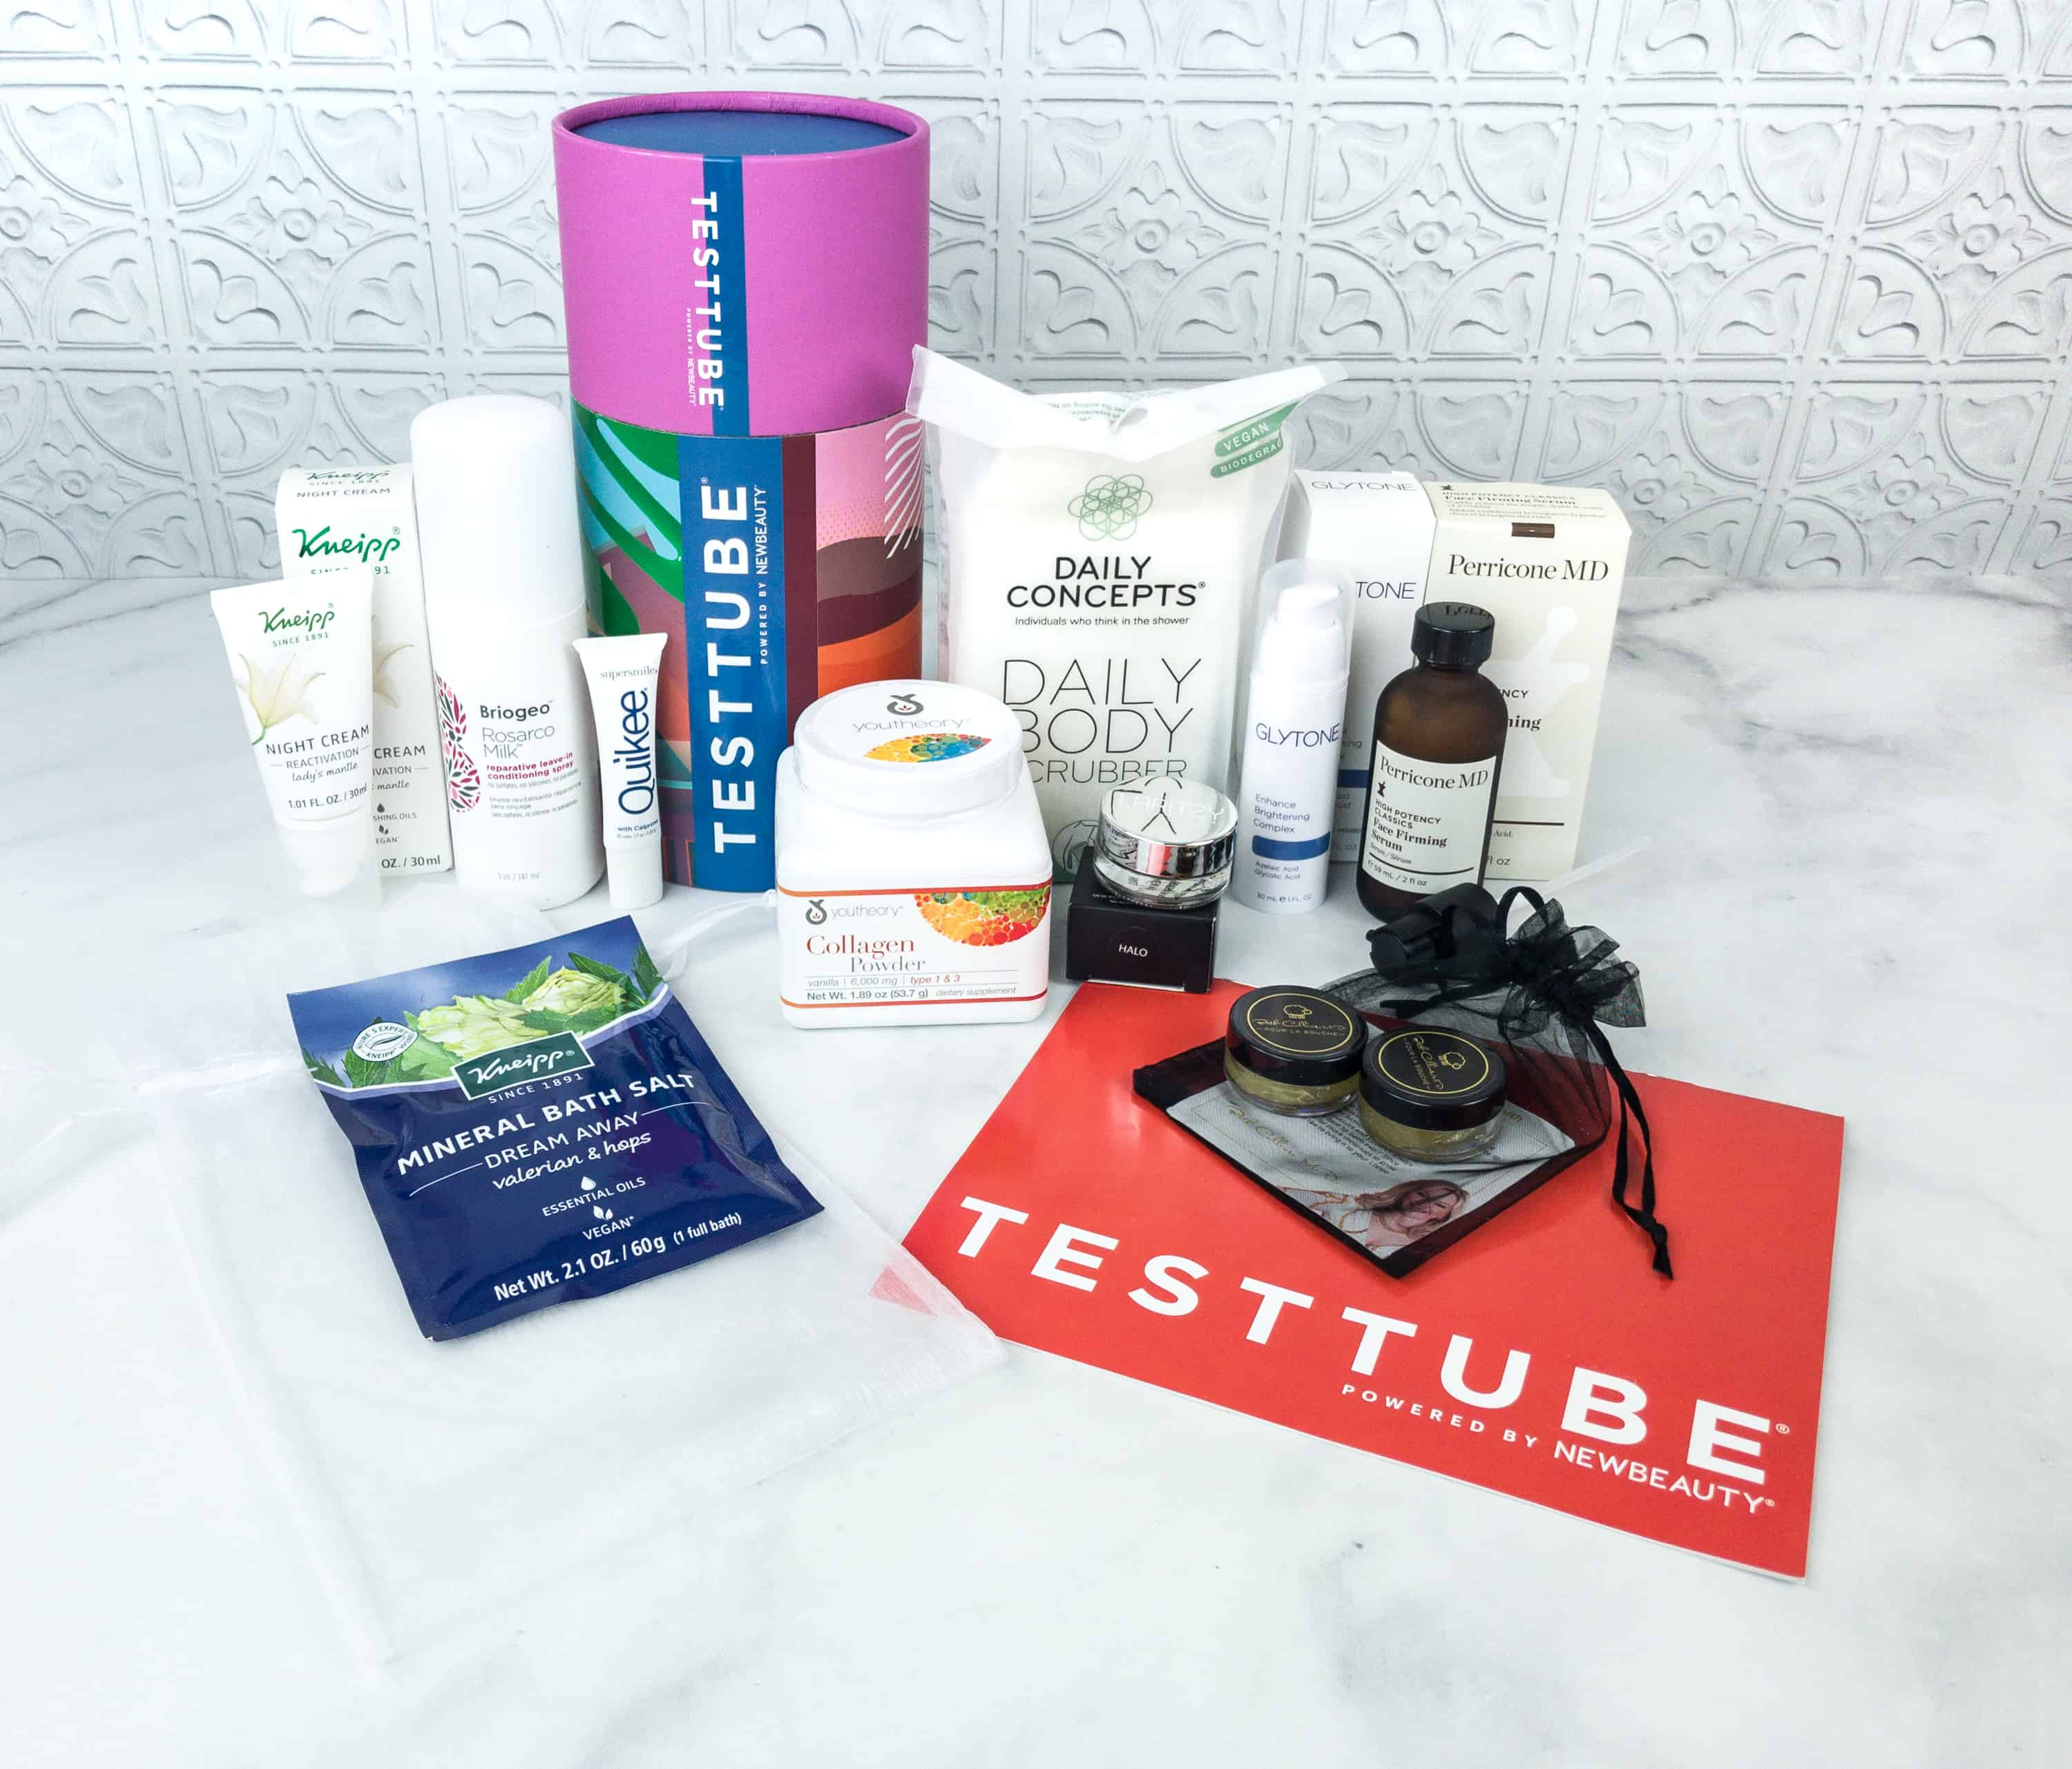 New Beauty Test Tube November 2018 Subscription Box Review